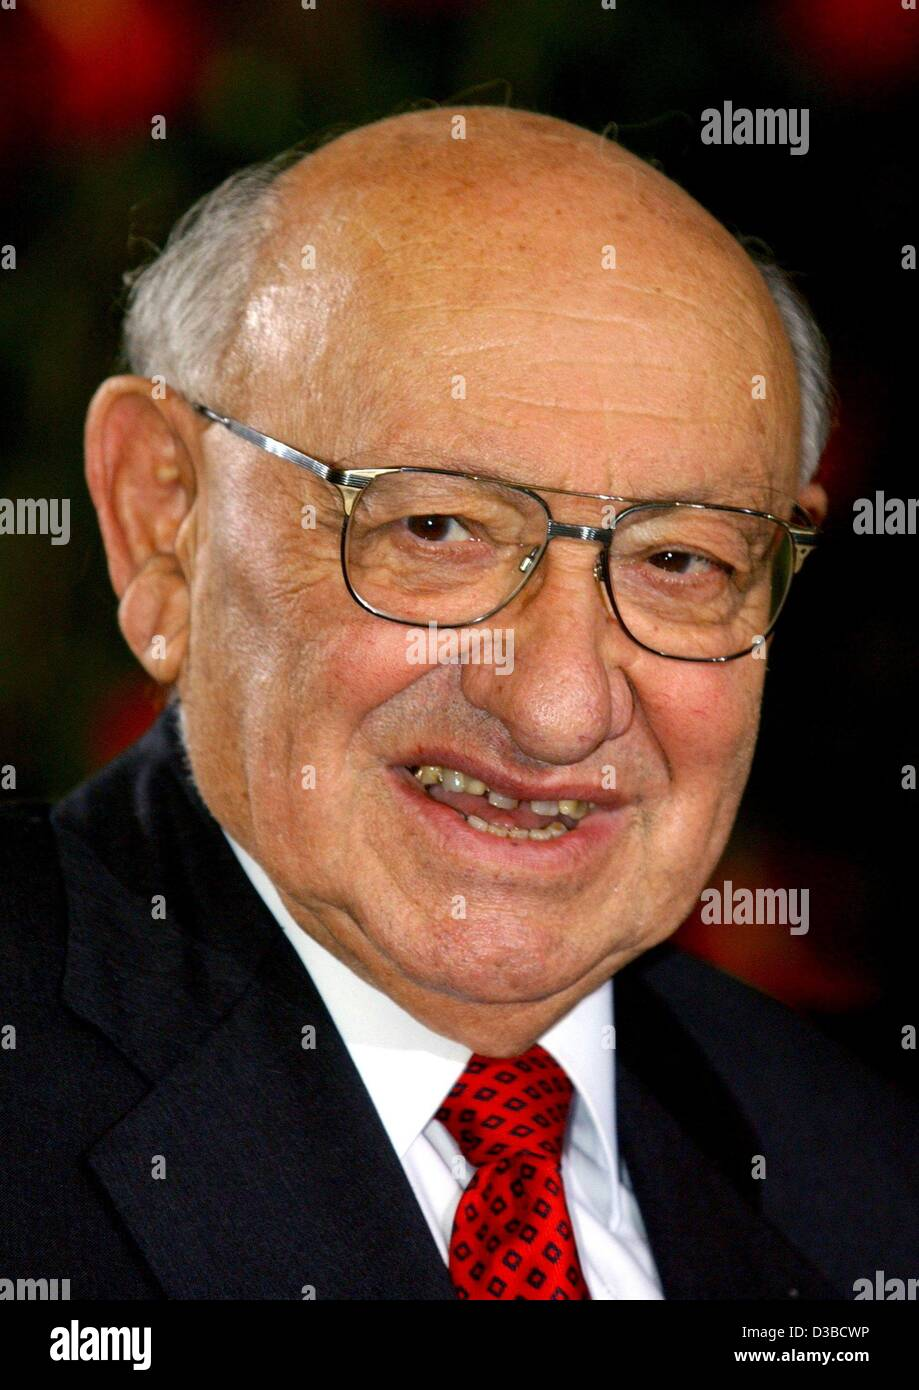 (dpa) - Marcel Reich-Ranicki, German author and literary critic, pictured in Frankfurt, 6 October 2002. - Stock Image